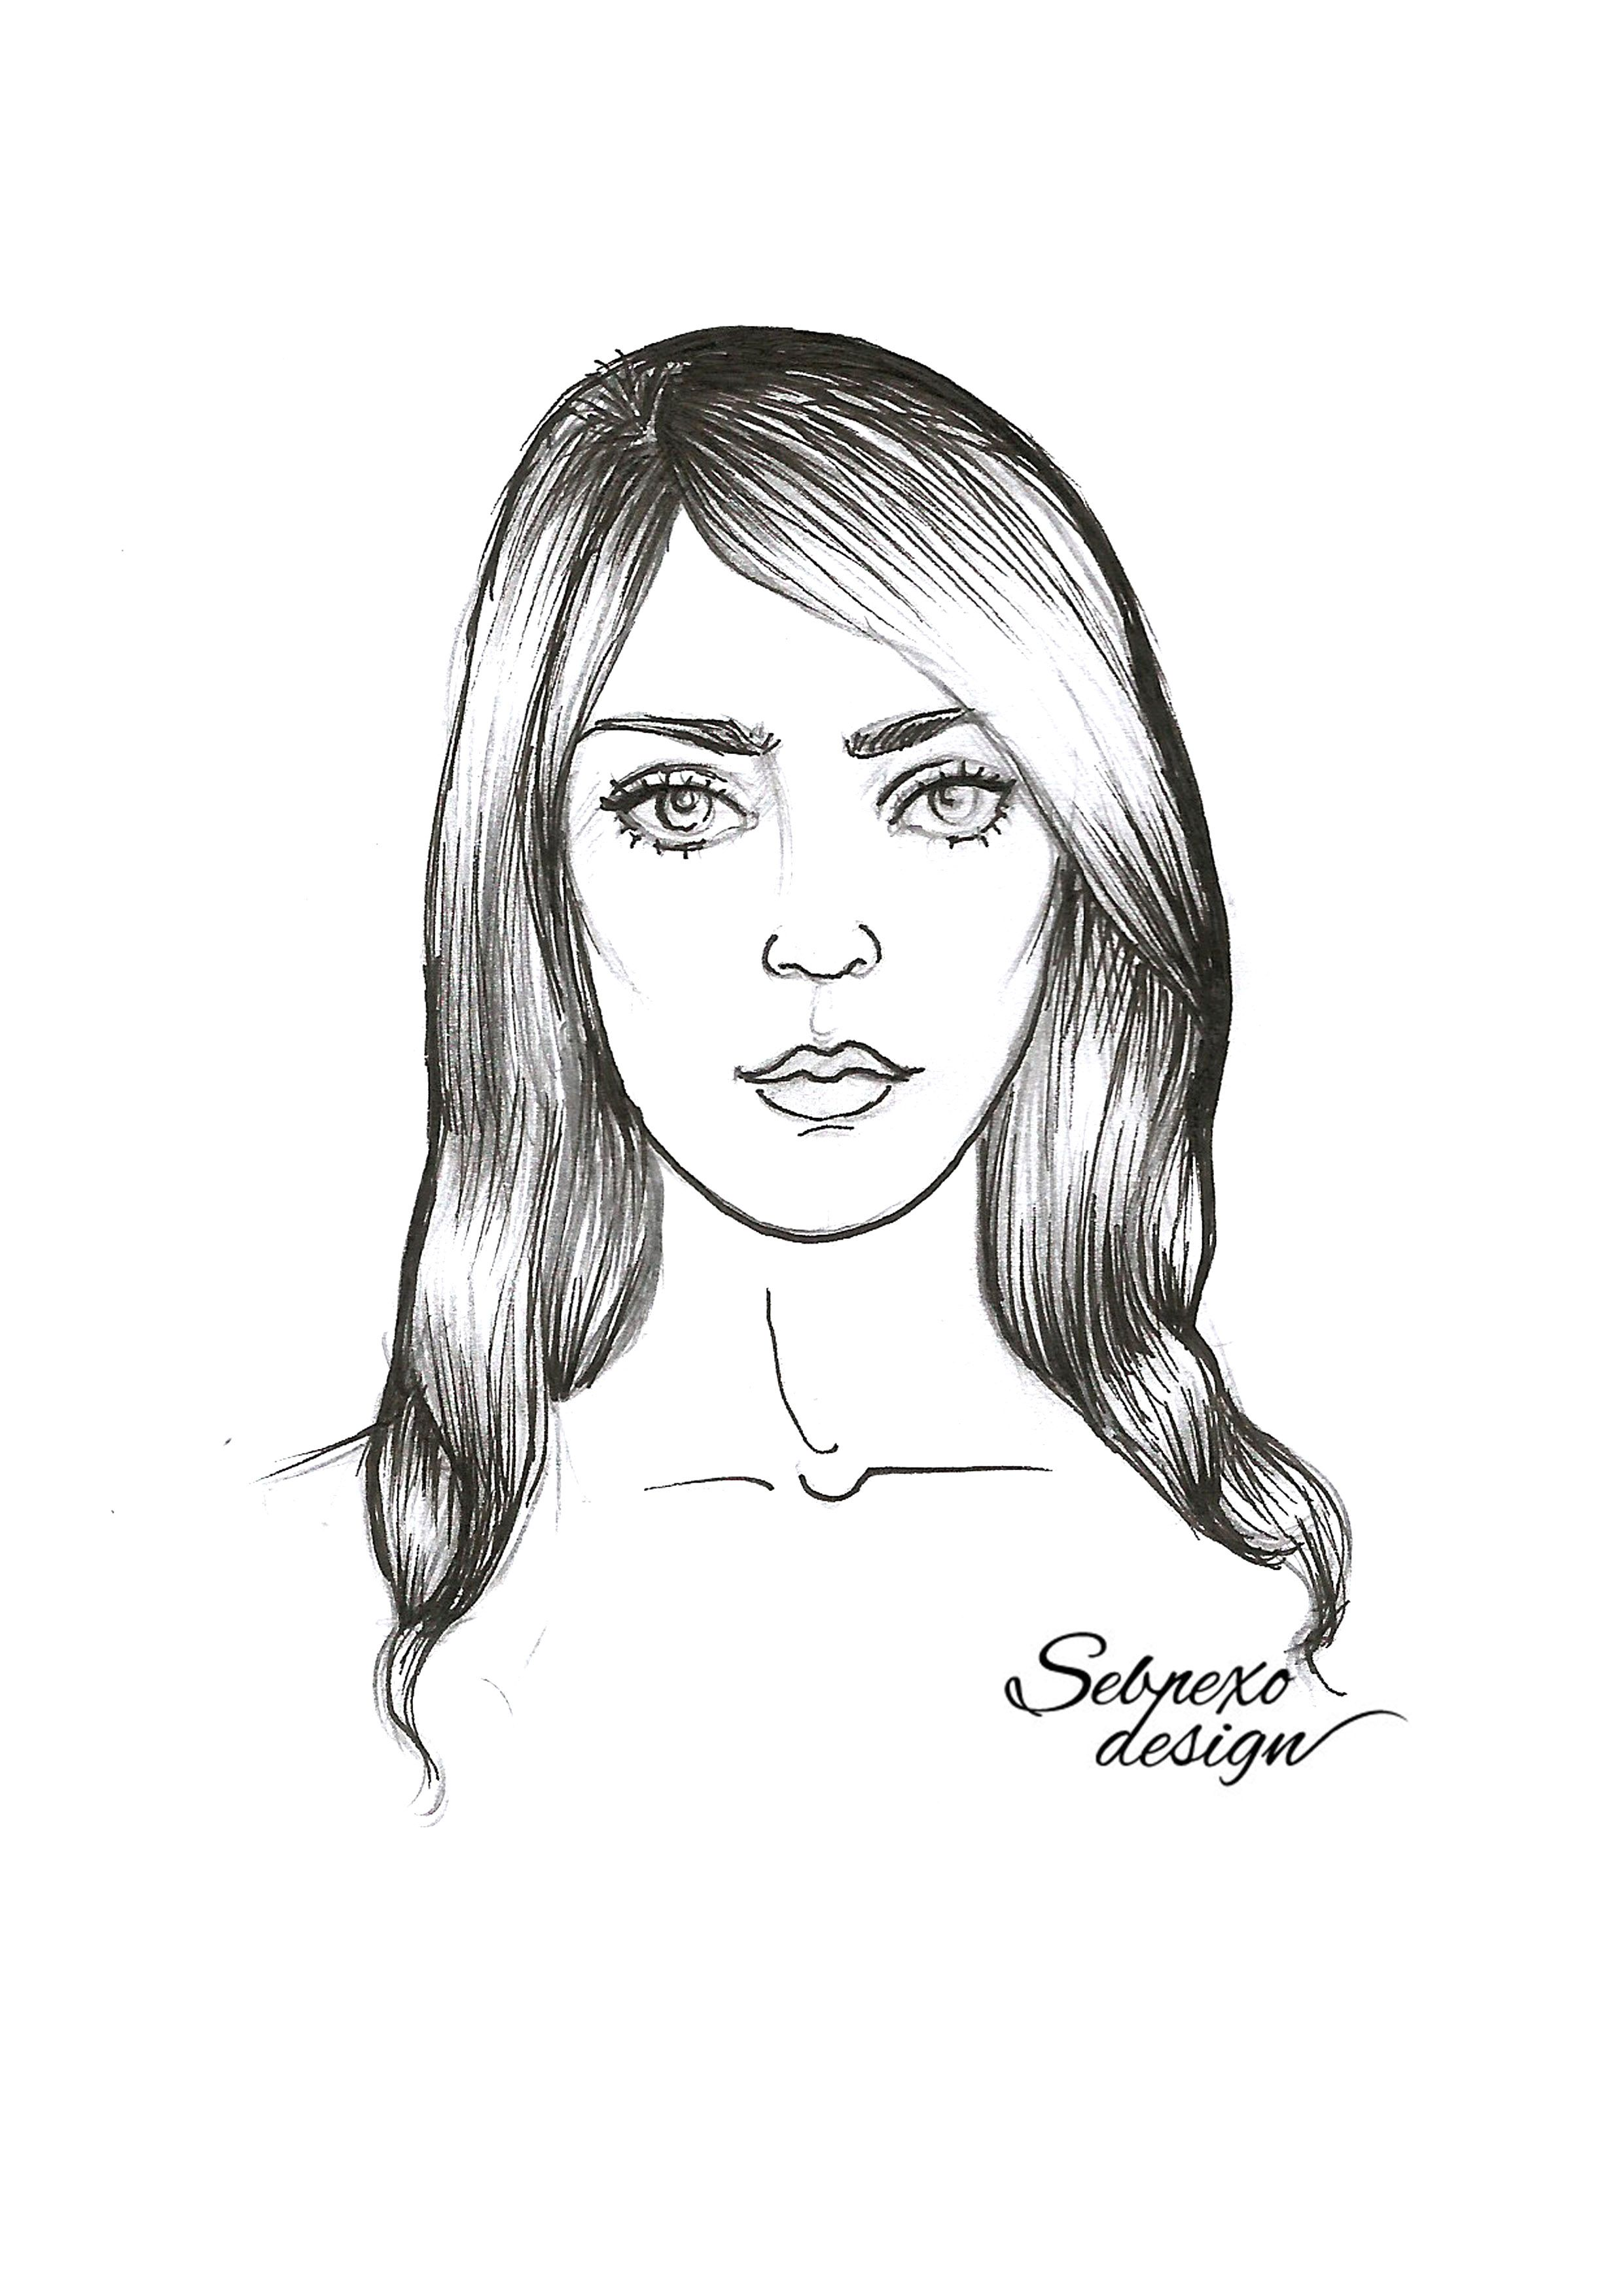 Face drawing fashion illustrations portrait female drawing face drawing fashion illustrations portrait female drawing fashion portrait moda izimi reviewsmspy